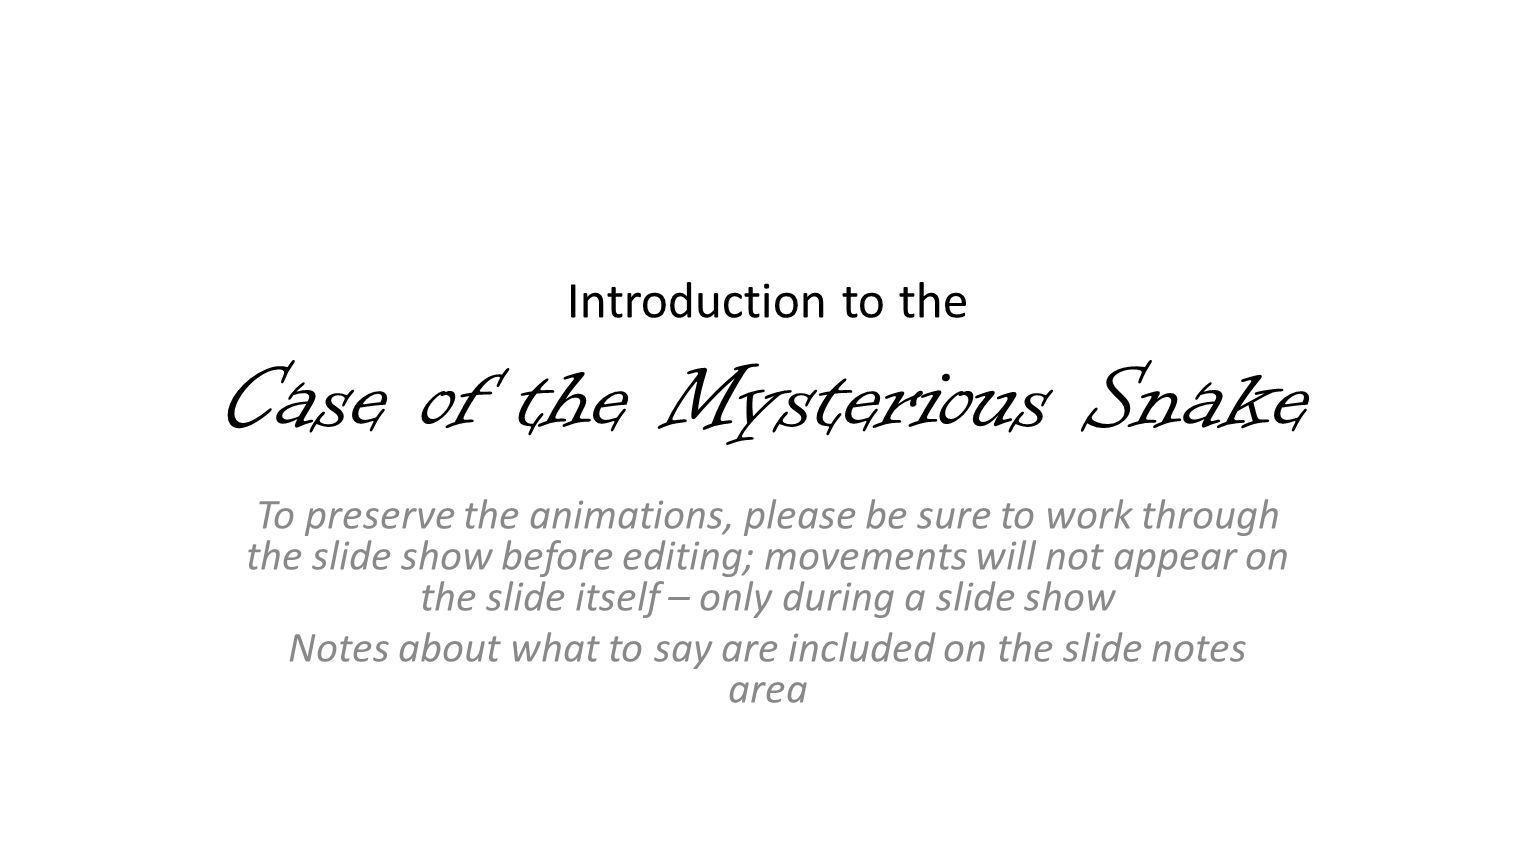 Introduction to the Case of the Mysterious Snake To preserve the animations, please be sure to work through the slide show before editing; movements will not appear on the slide itself – only during a slide show Notes about what to say are included on the slide notes area